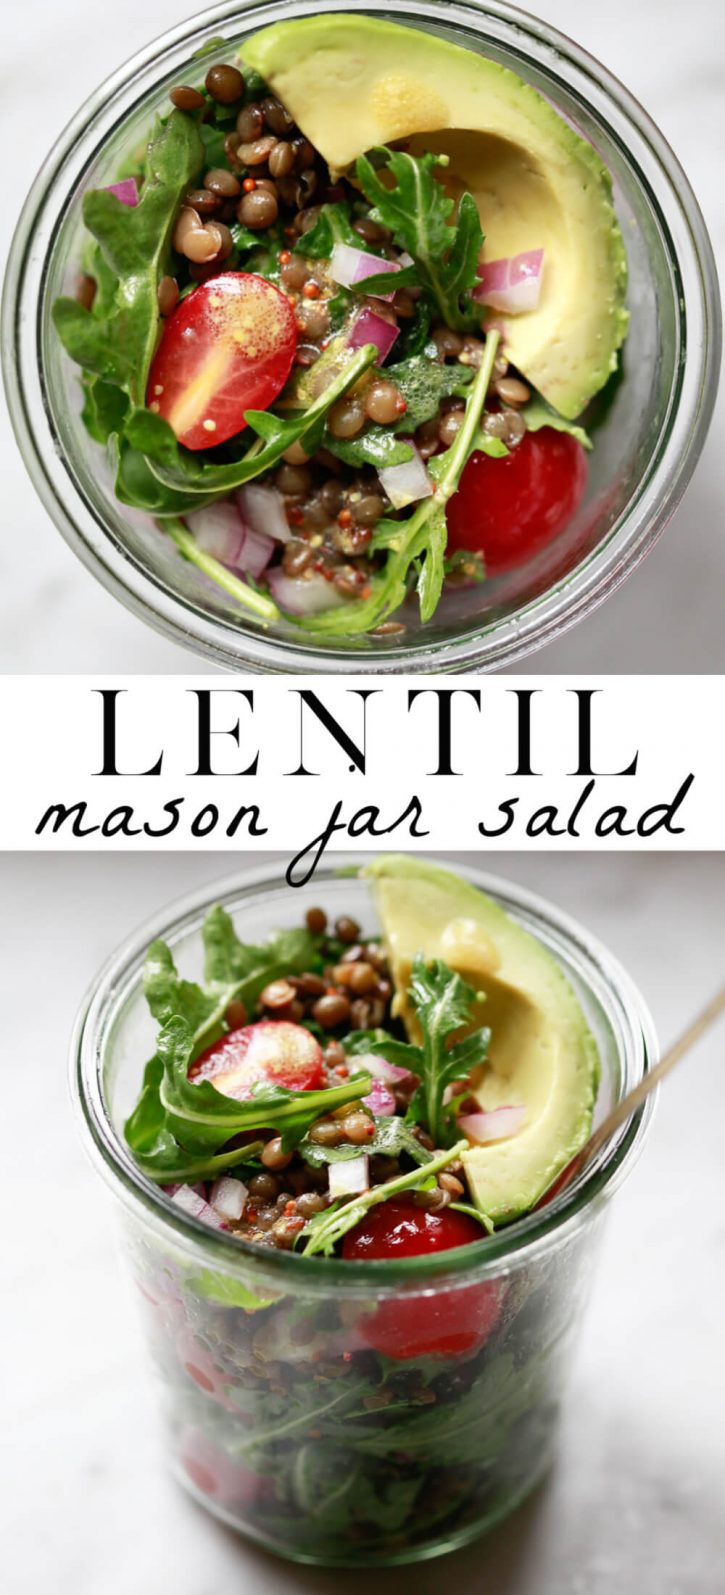 Close-up photography of a cold French lentil salad mixed with arugula, tomatoes, red onion, and a mustard vinaigrette. The Mason jar salad is ready to eat and topped with avocado.